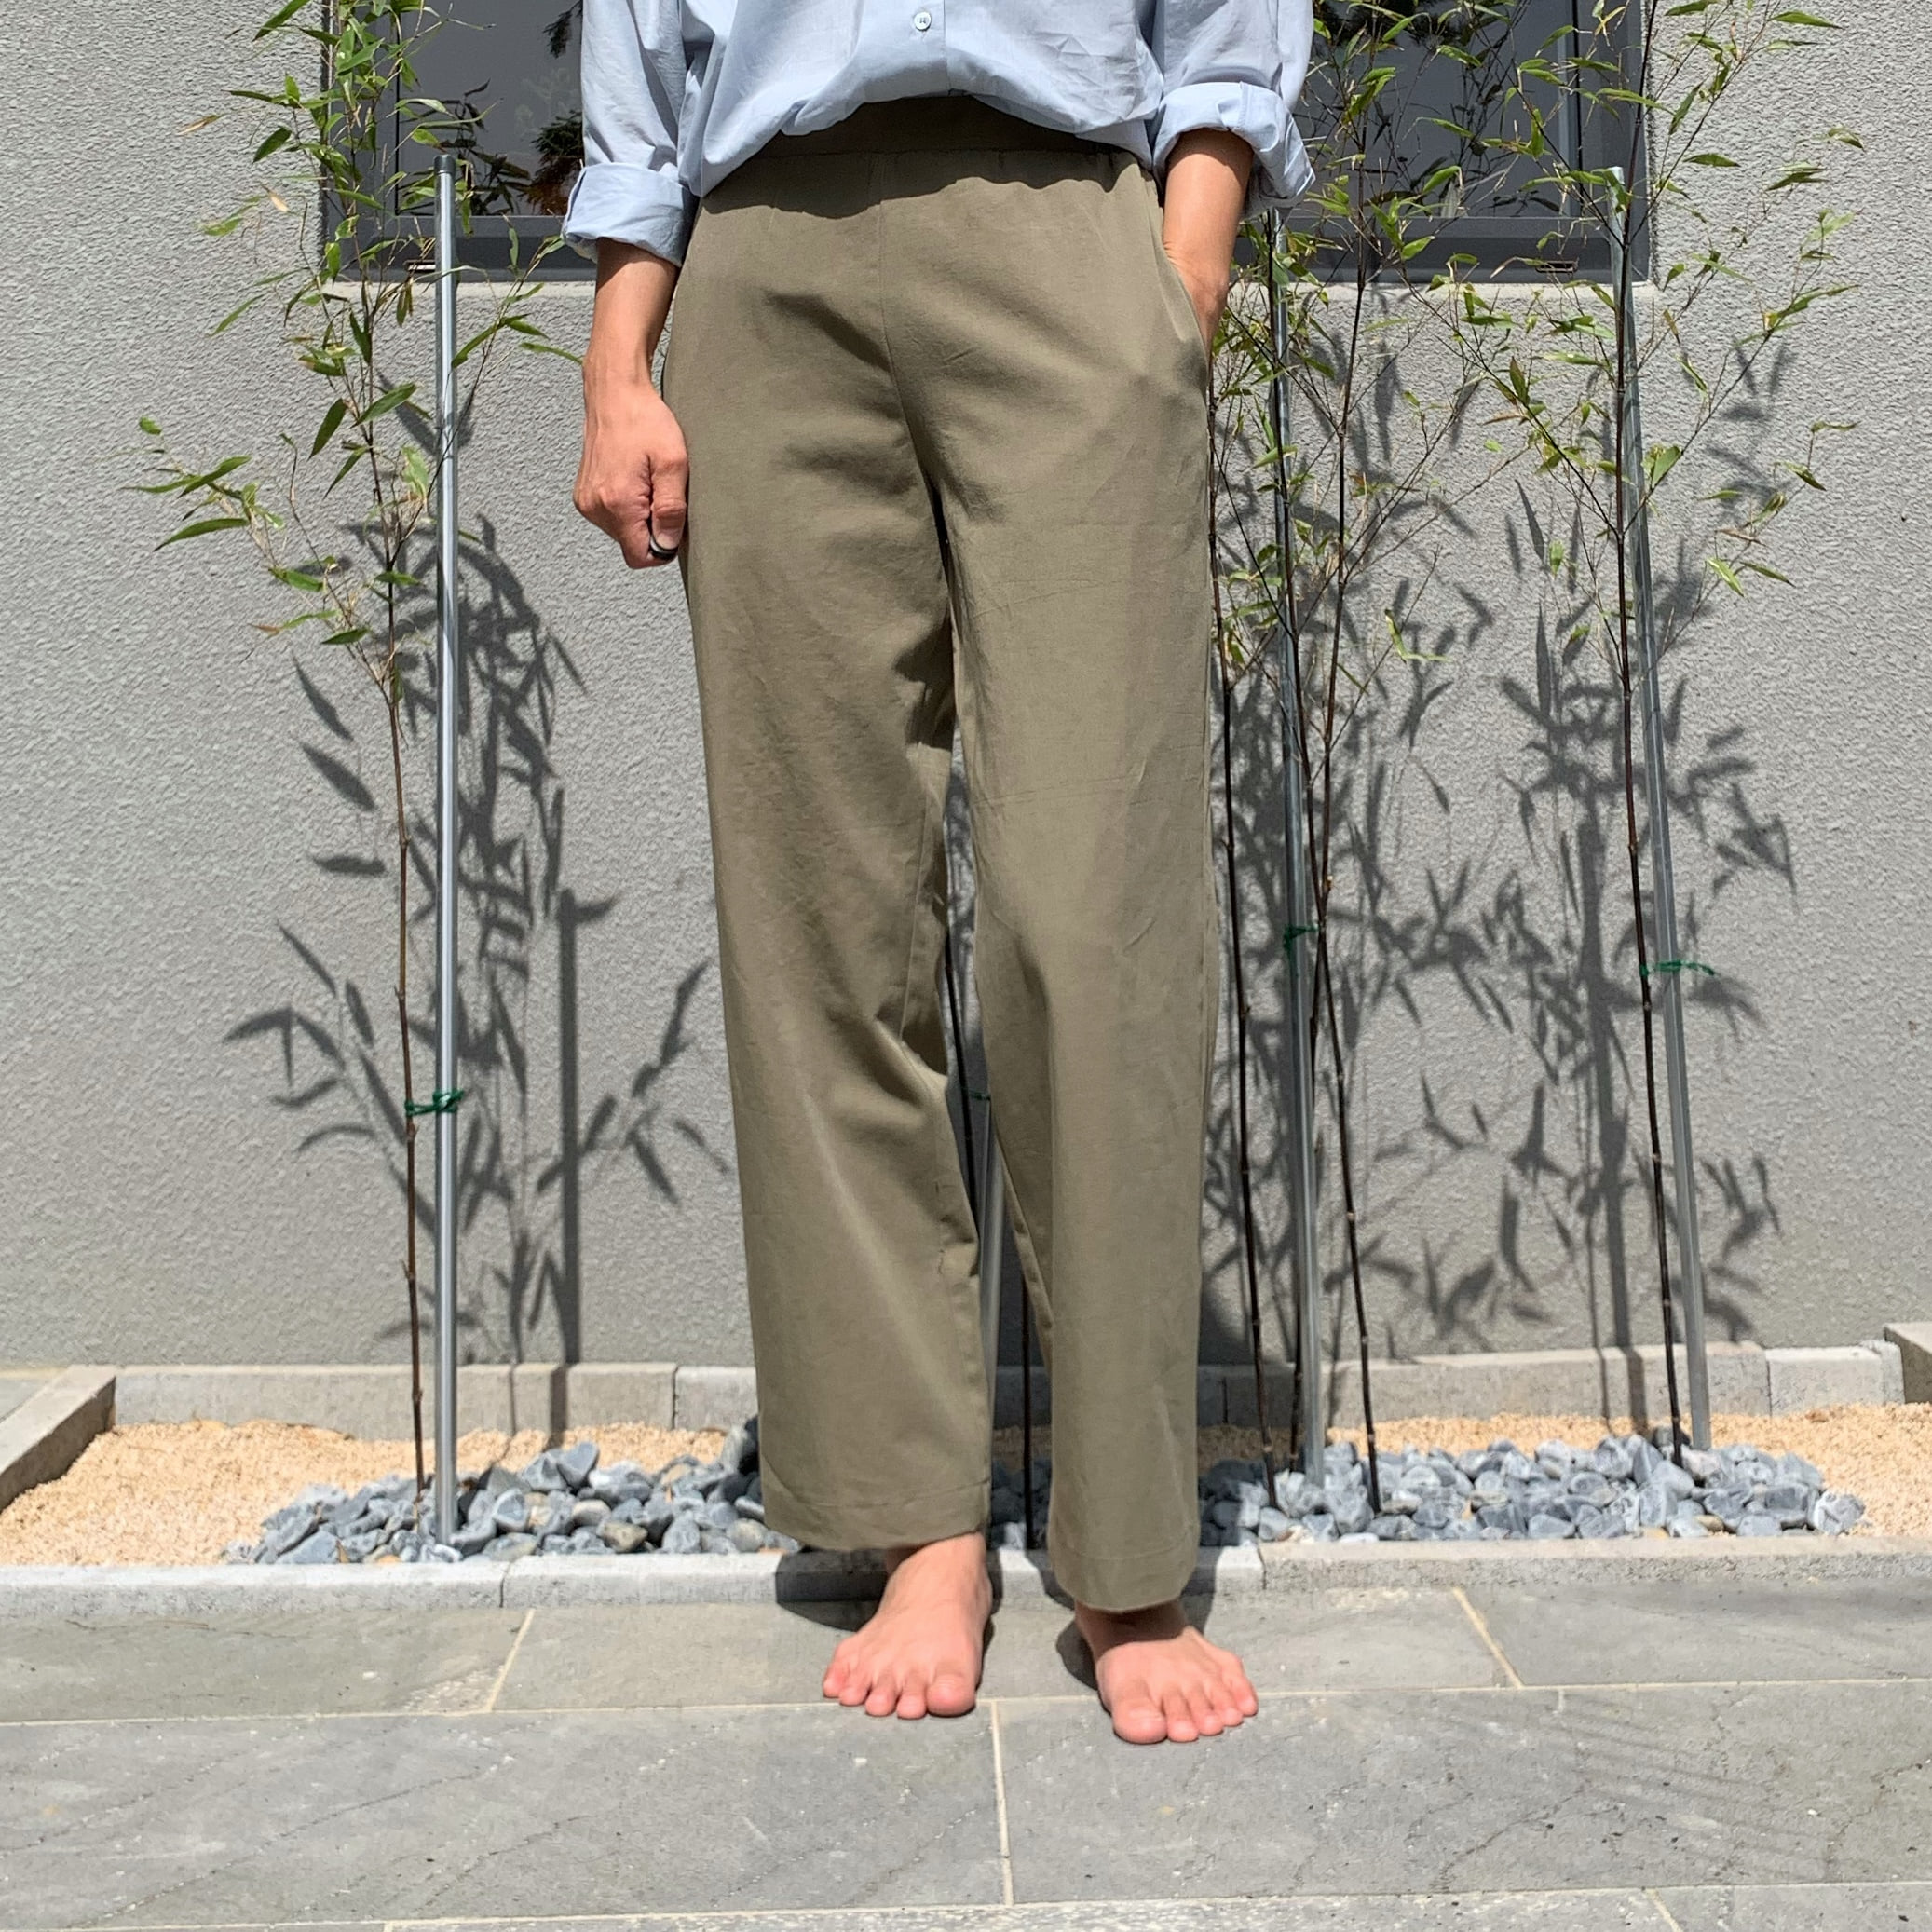 Cotton Band pants